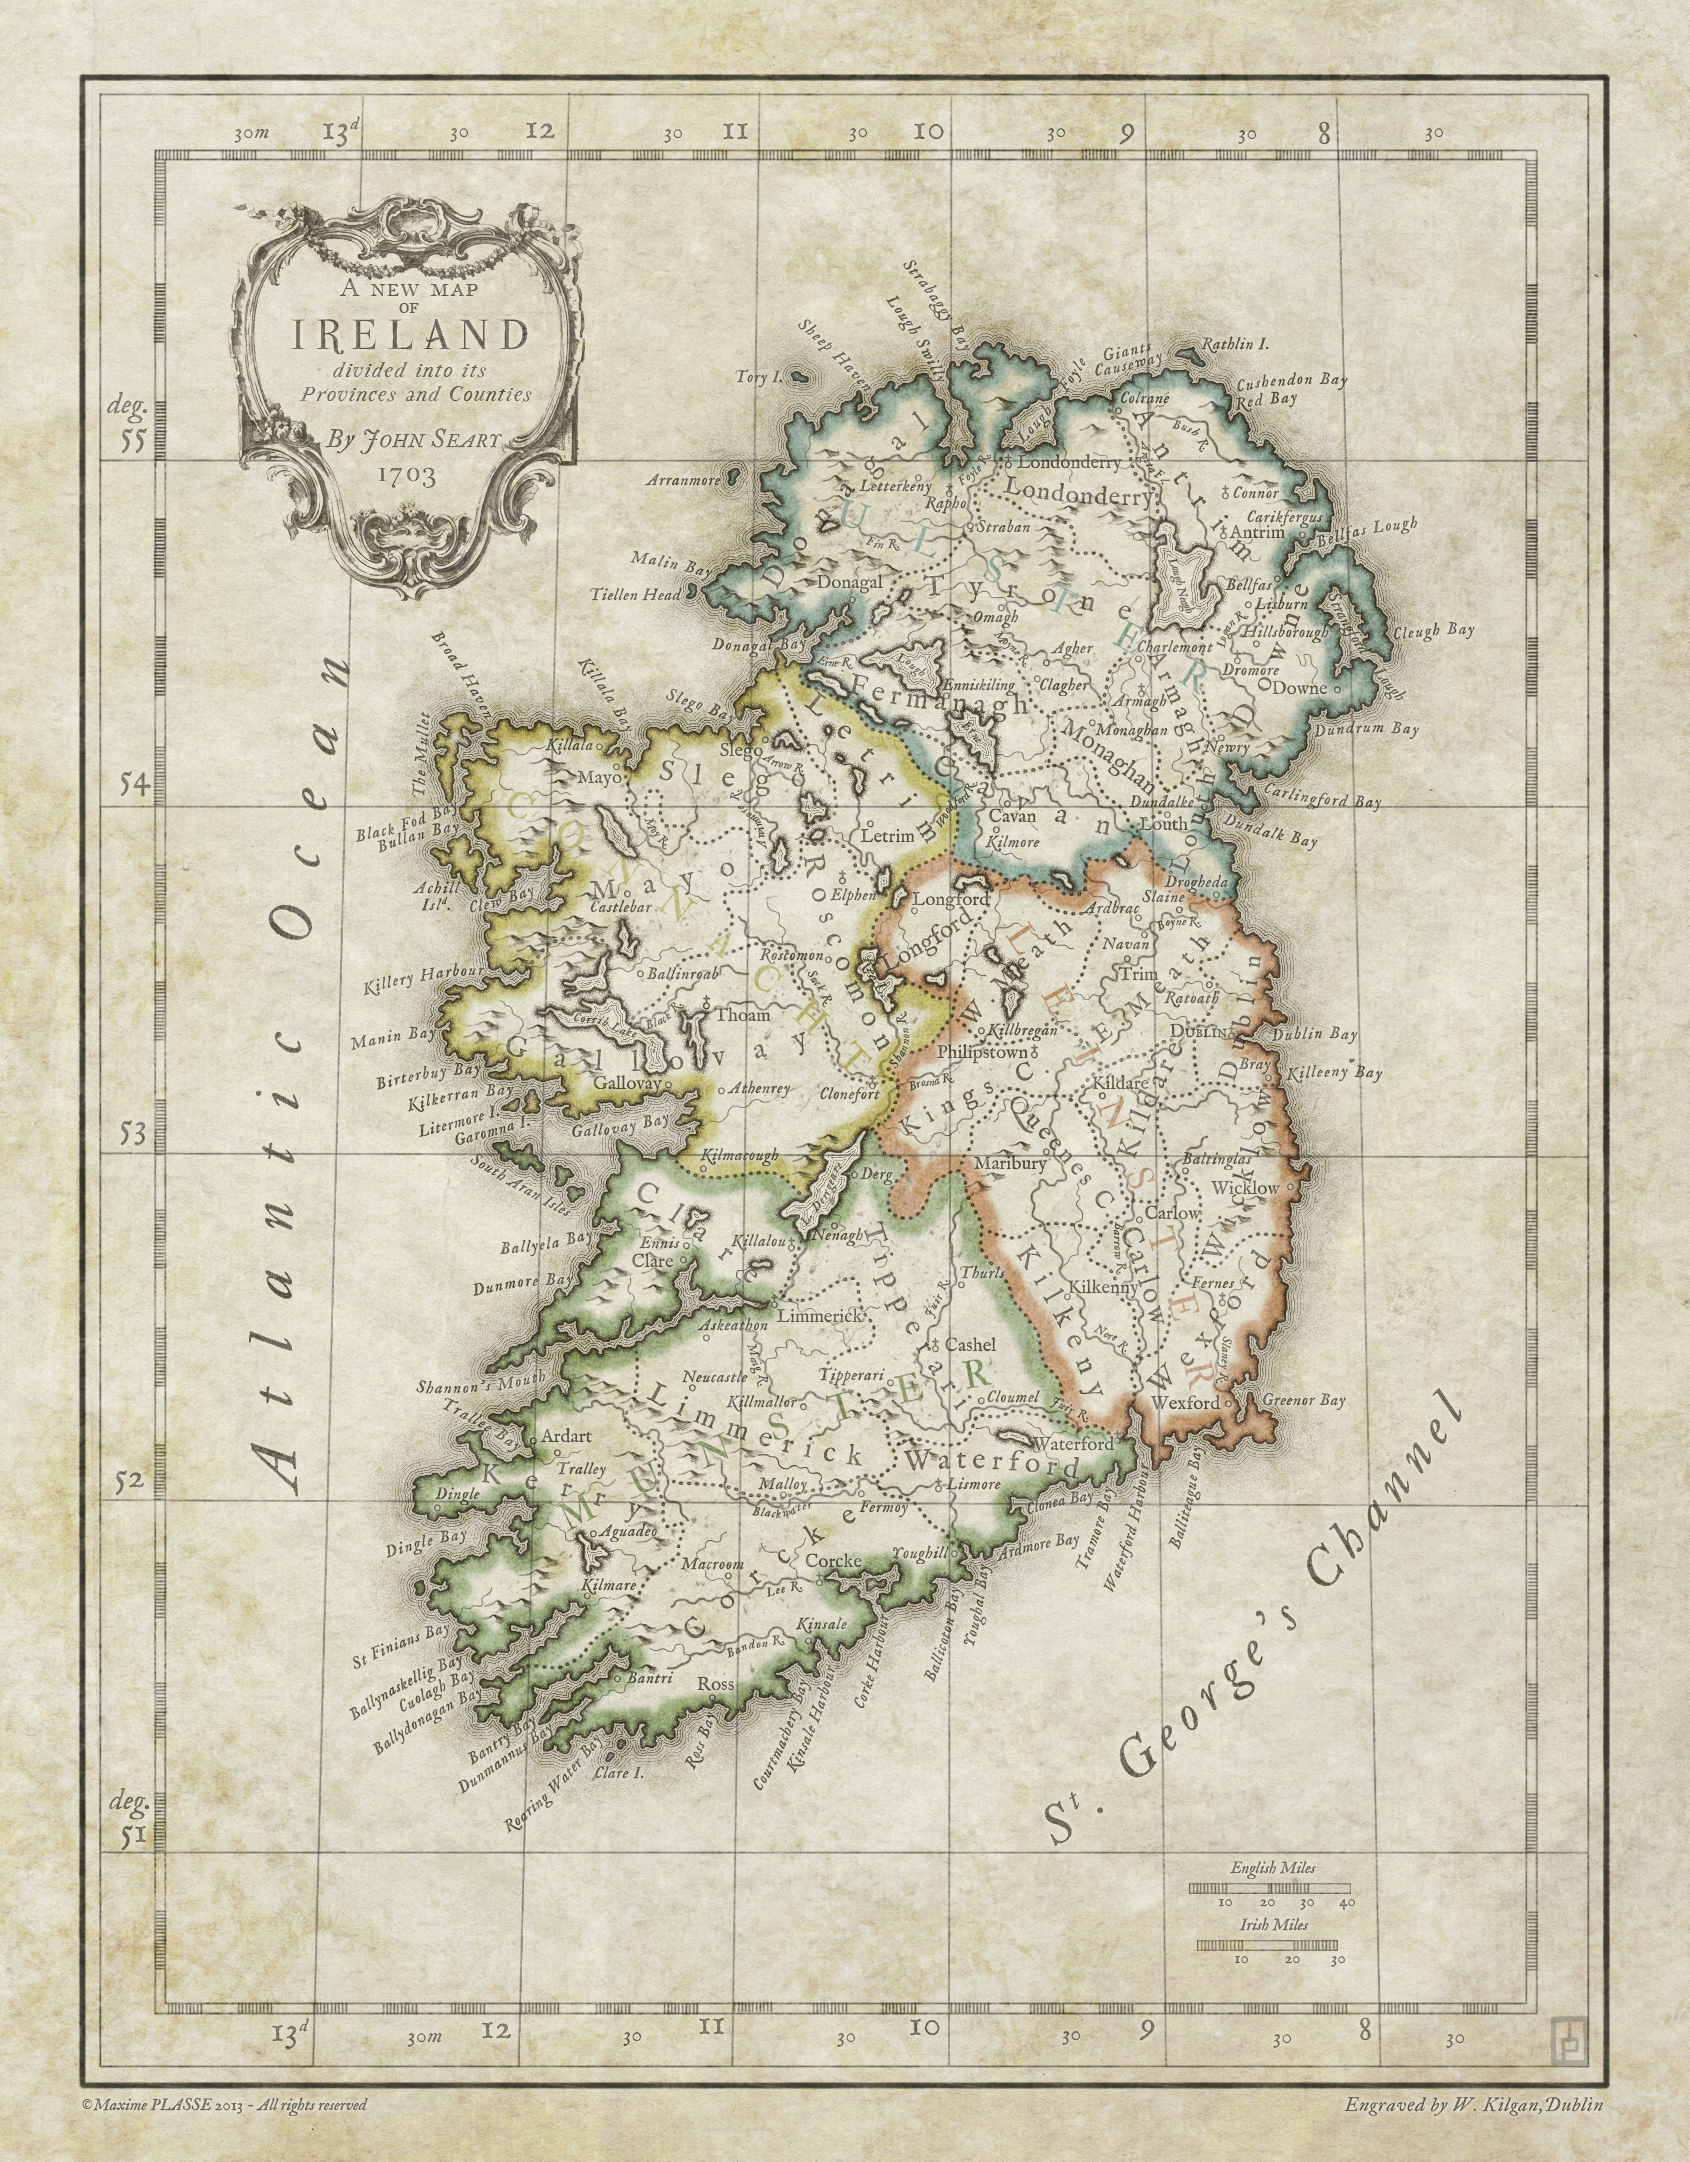 Ireland 1703. 